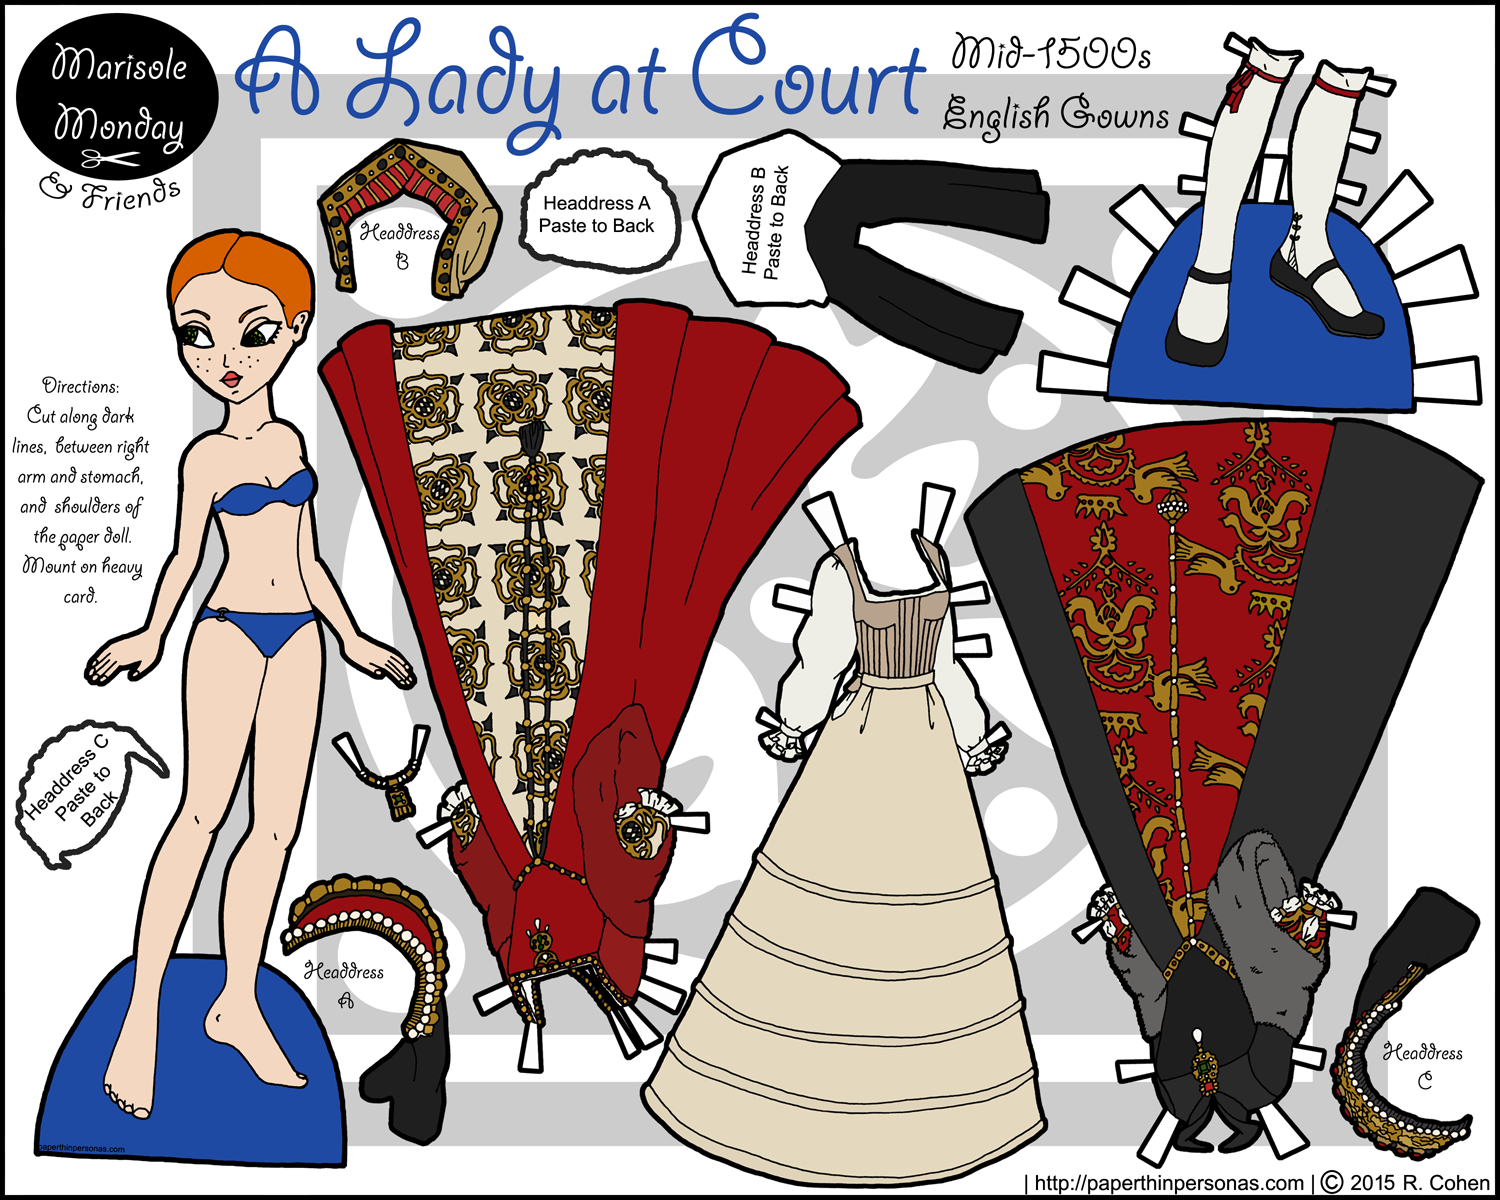 A historical paper doll in Tudor dress from the mid-1500s in full color for printing from paperthinpersonas.com